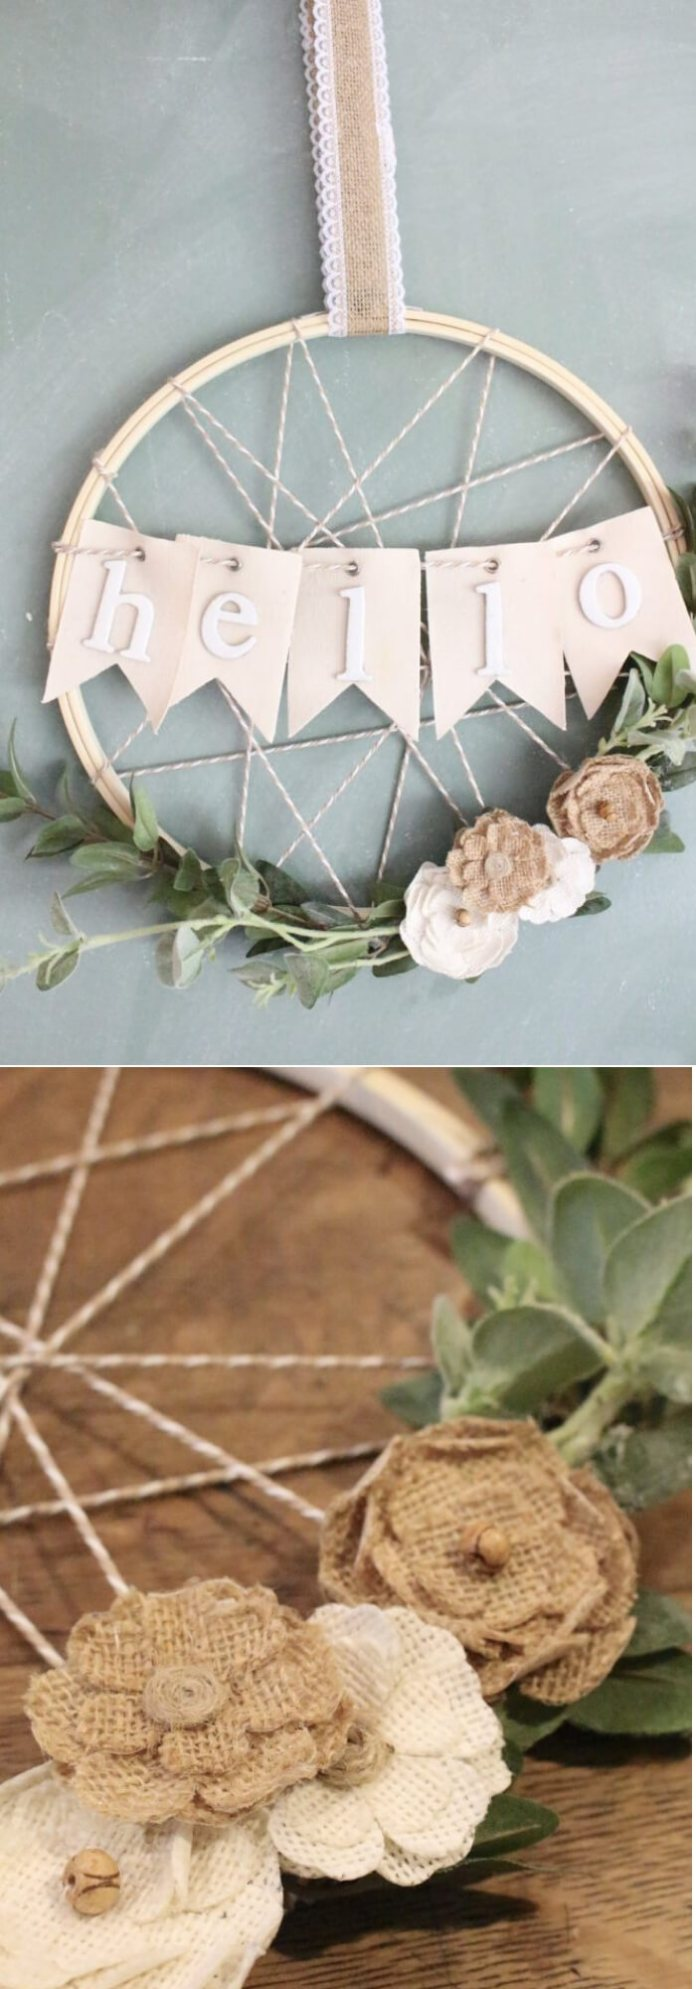 Easy and Simple DIY Spring Wreath Ideas | DIY Embroidery Hoop Wreath